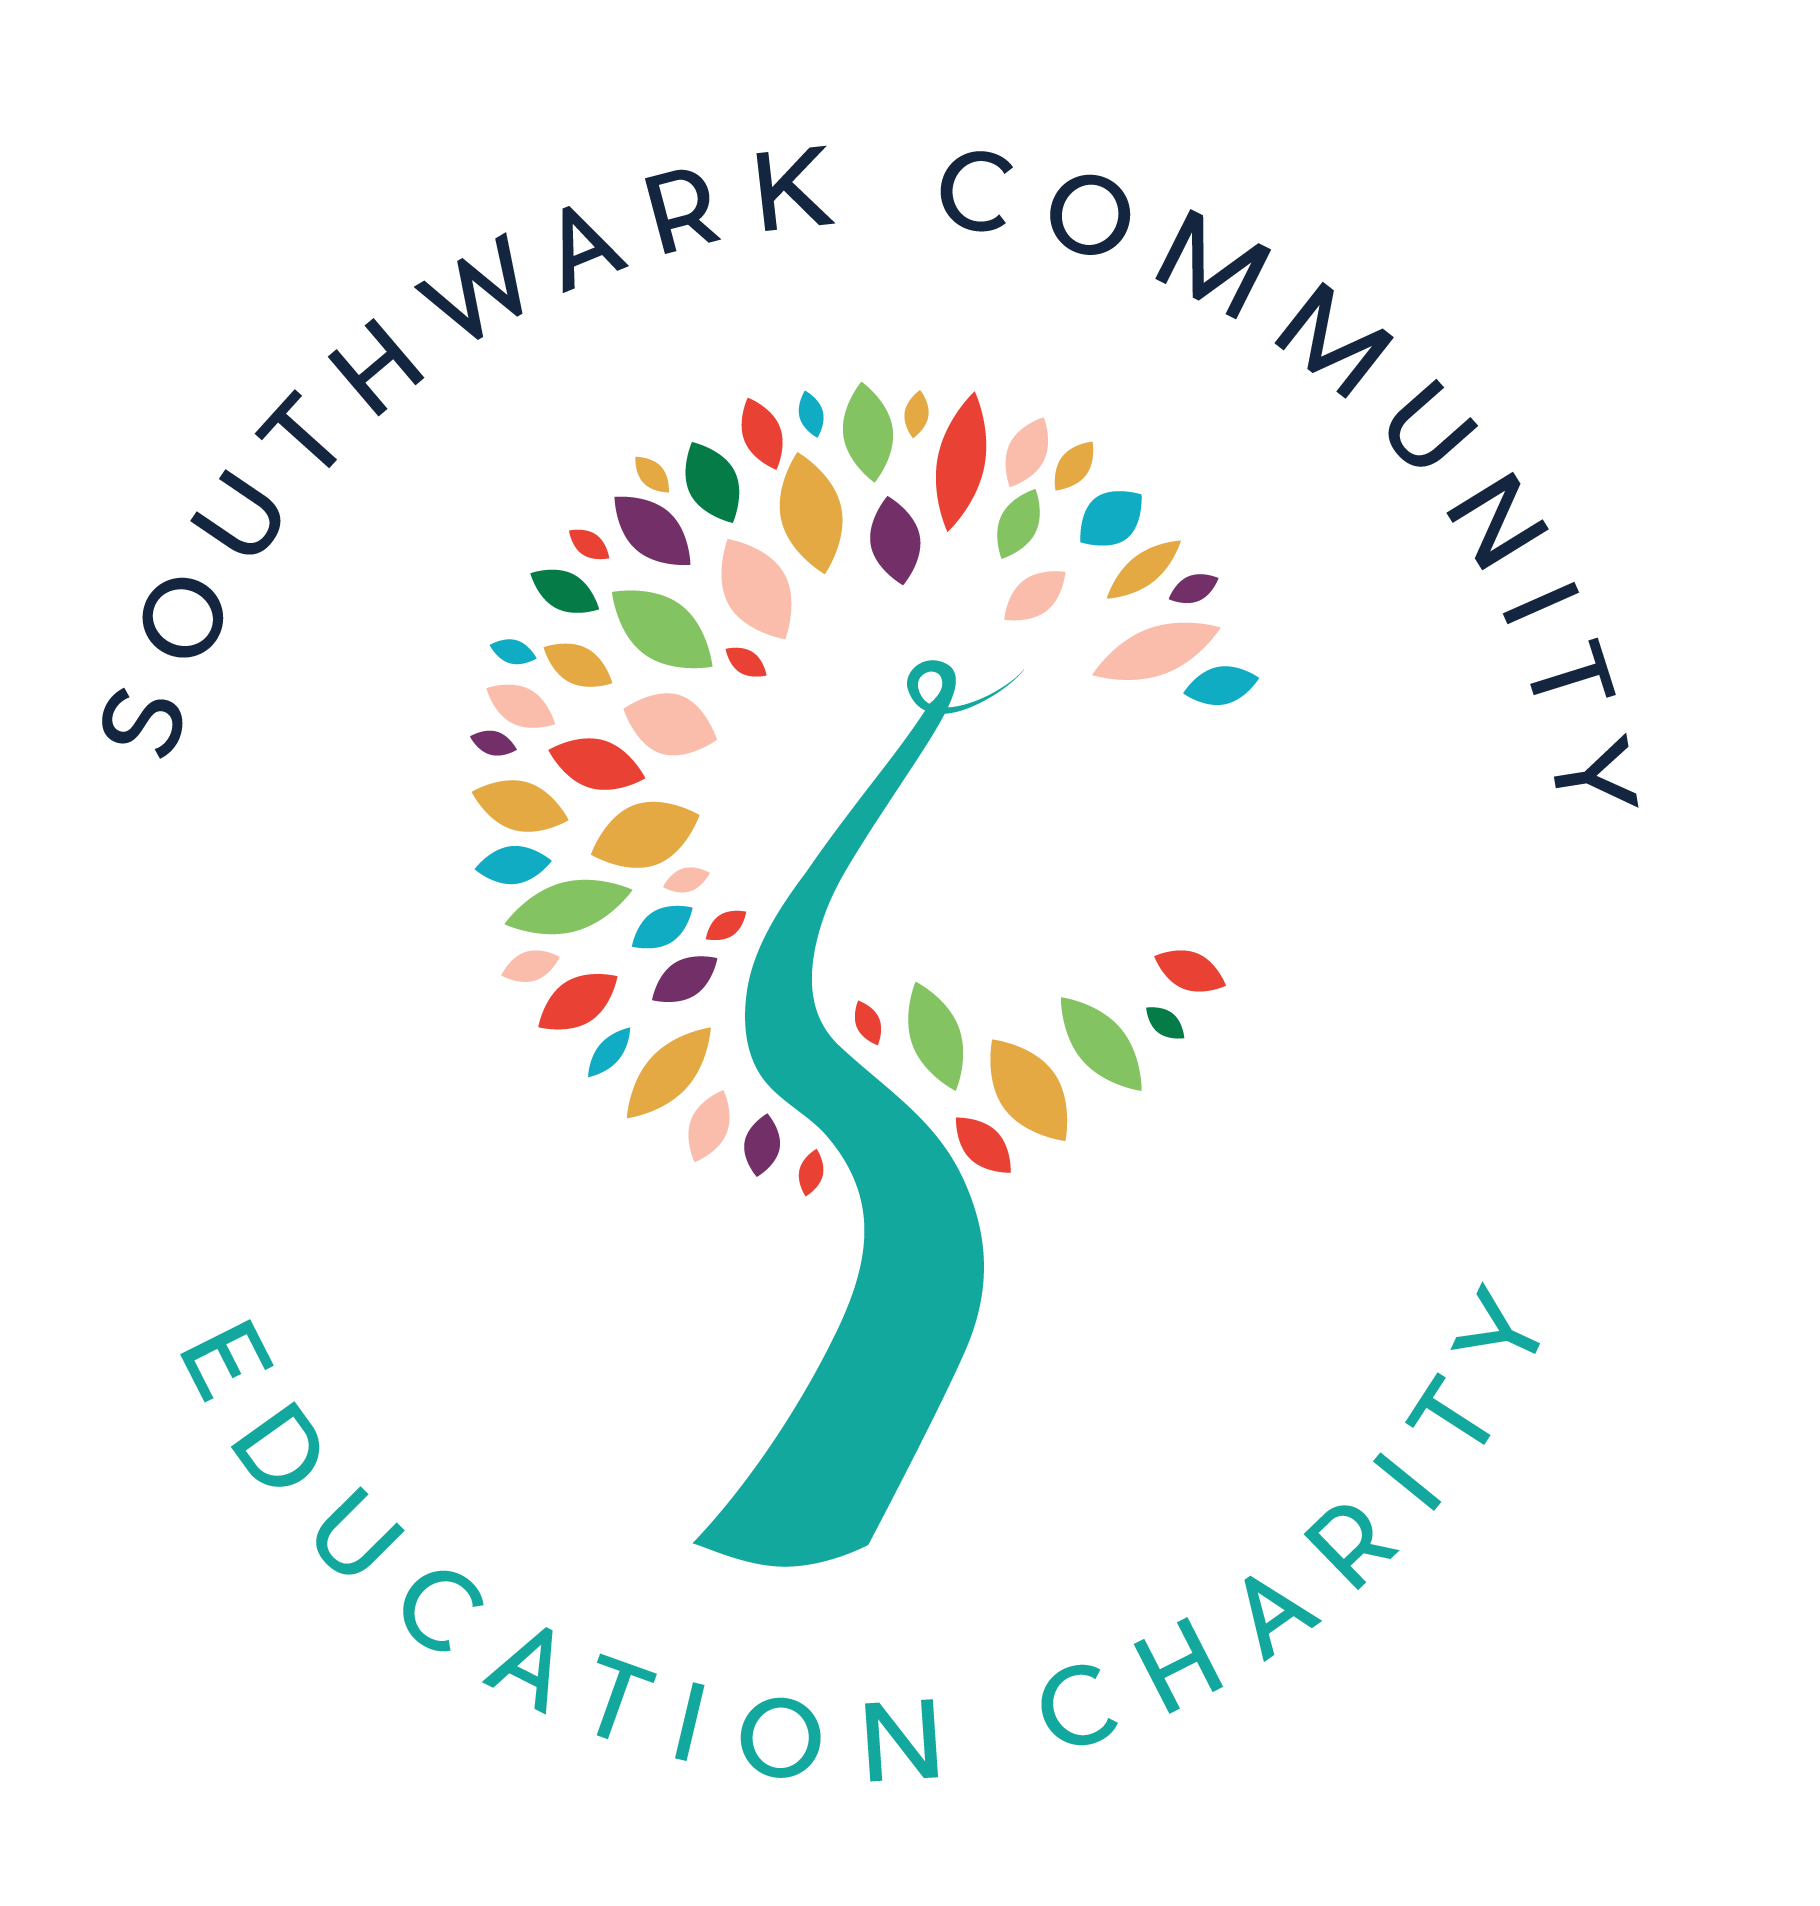 Southwark Community Education Charity